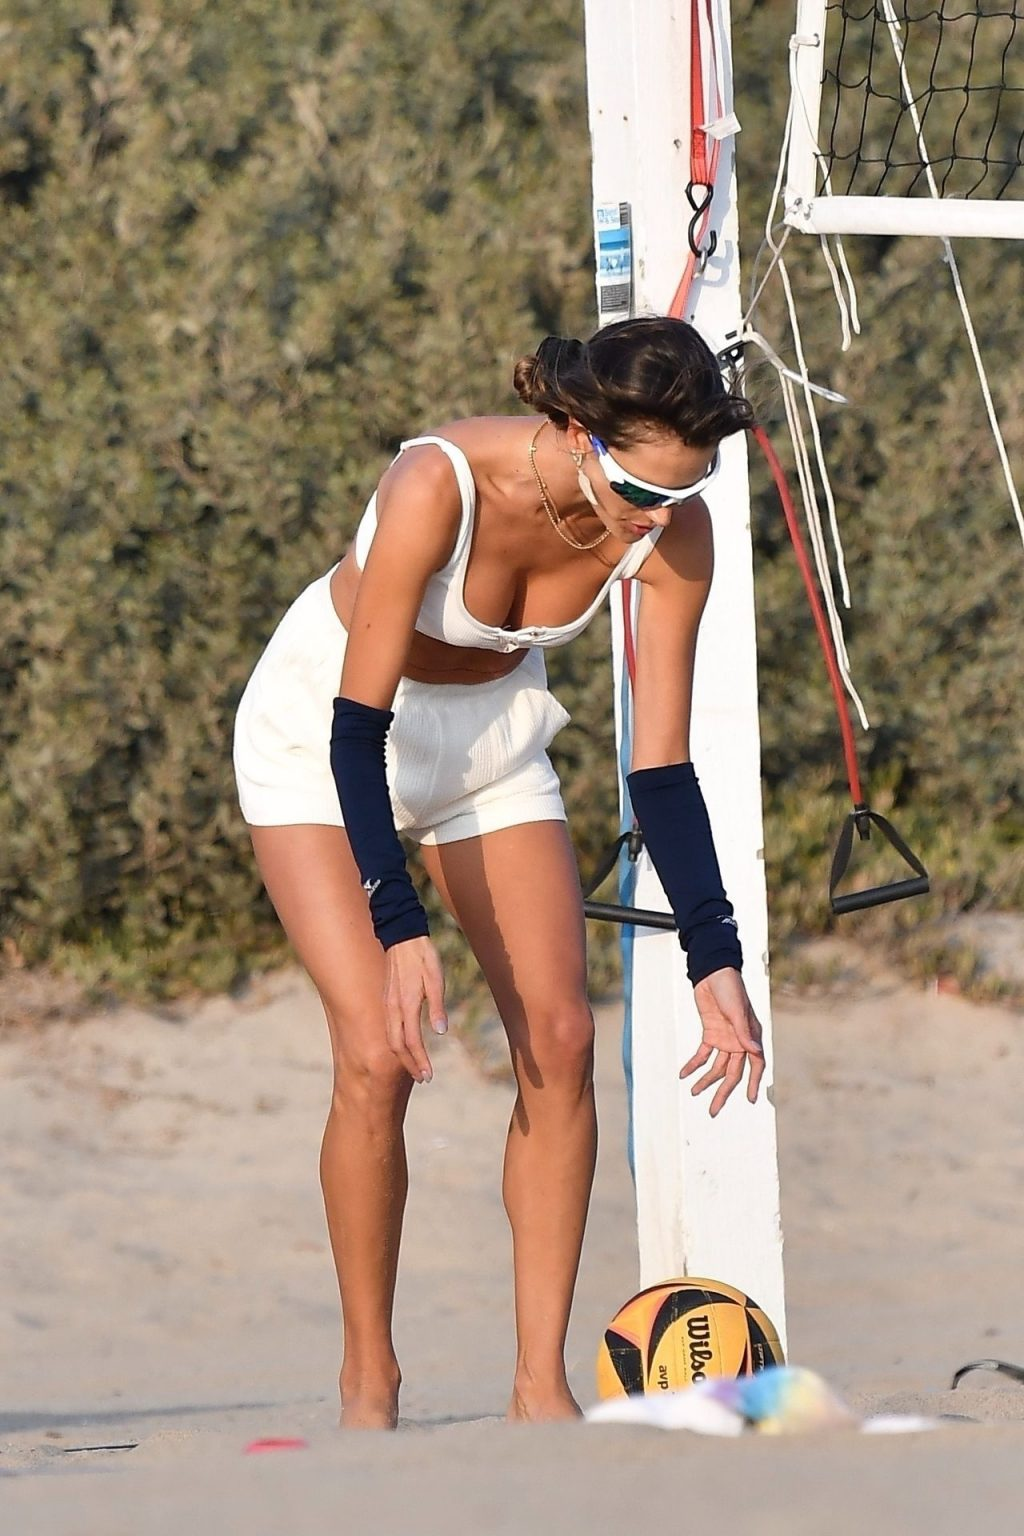 Alessandra Ambrosio Practices Her Volleyball Skills on the Beach with Friends (57 Photos)